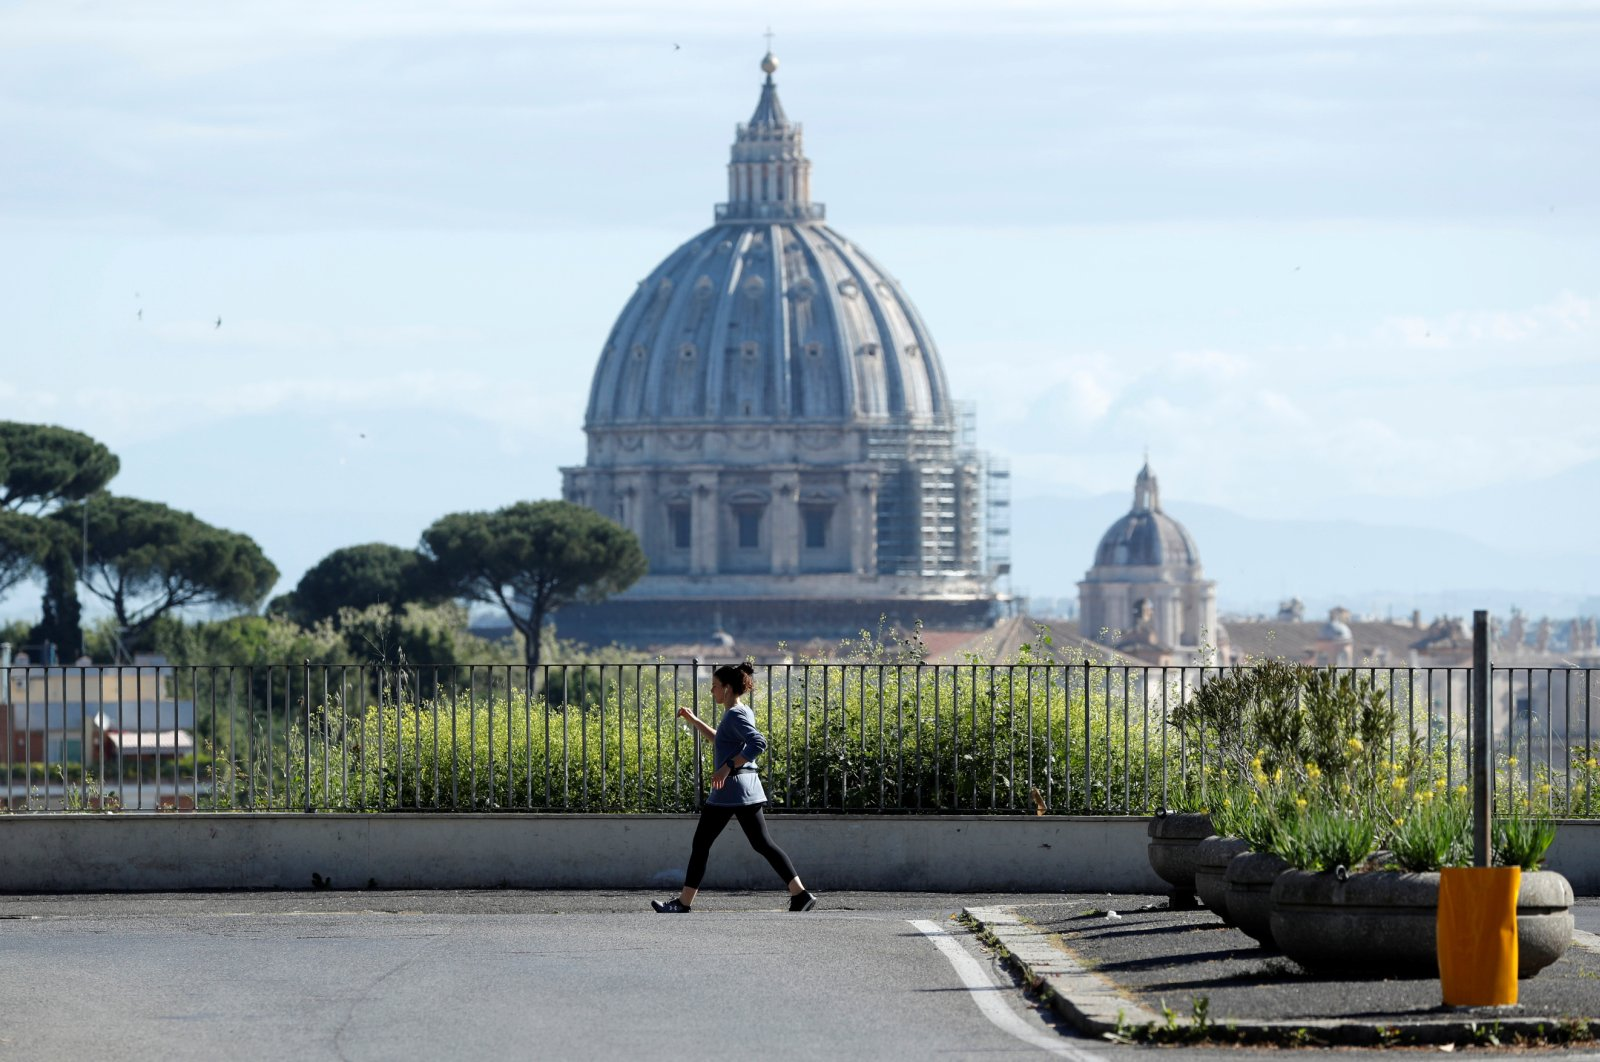 A woman walks with St. Peter's Basilica in the background, in Rome, Italy, May 3, 2020. (Reuters Photo)